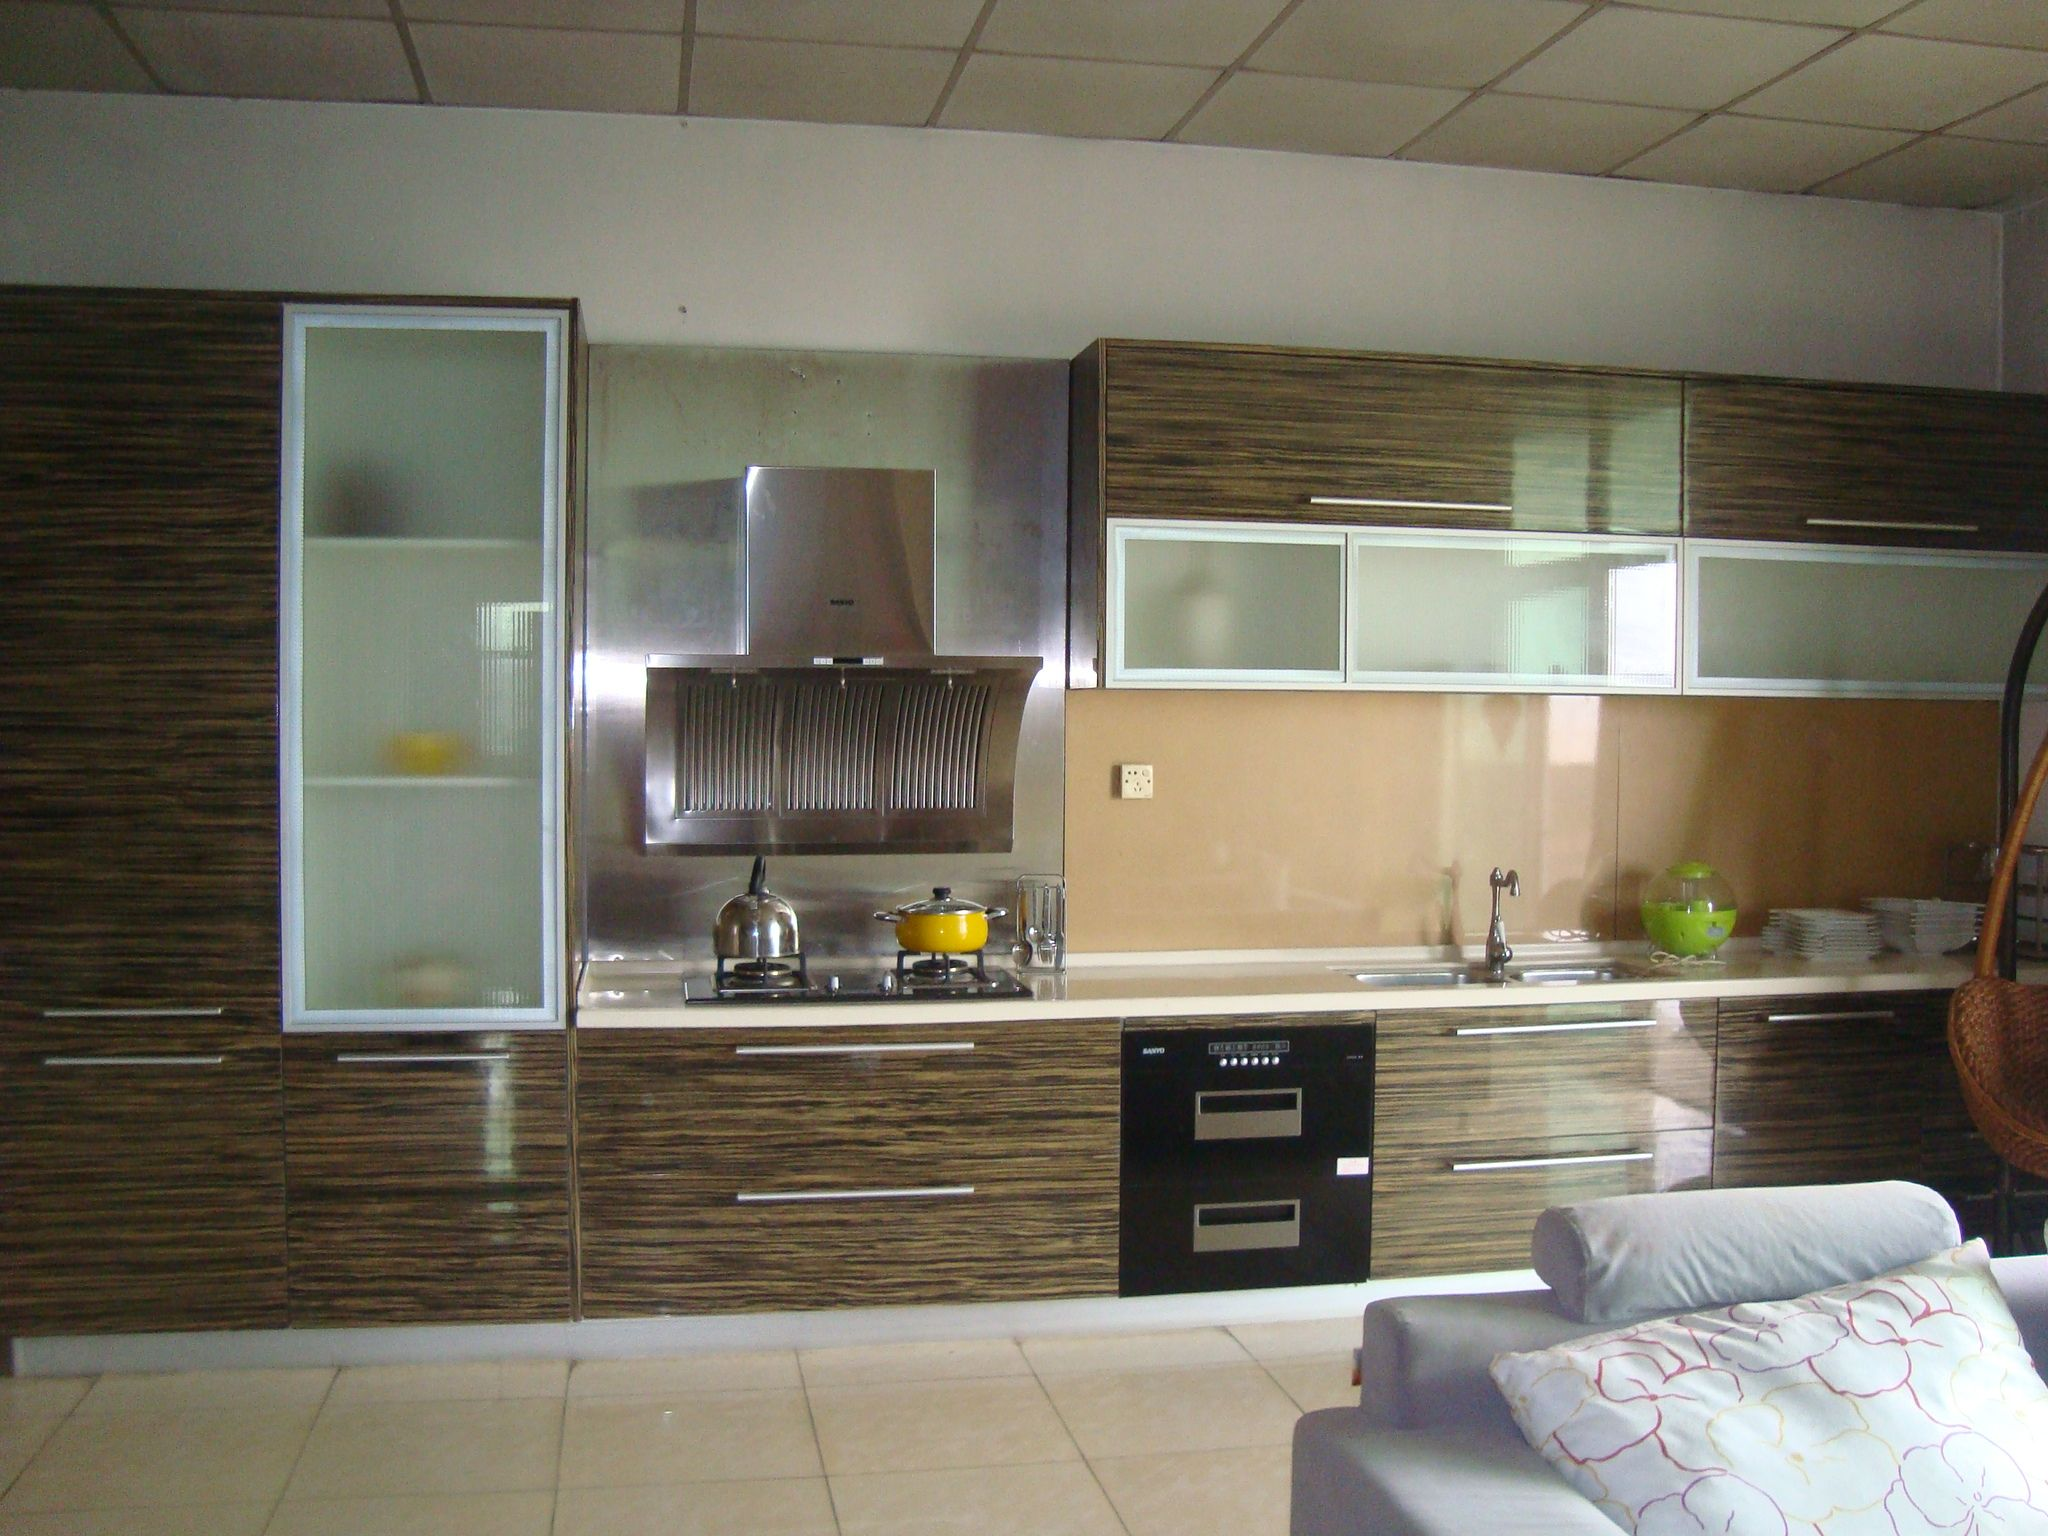 Artificial Wood Veneer Kitchen Cabinets Laminate Kitchen Cabinets Kitchen Cabinets Thermofoil Kitchen Cabinets